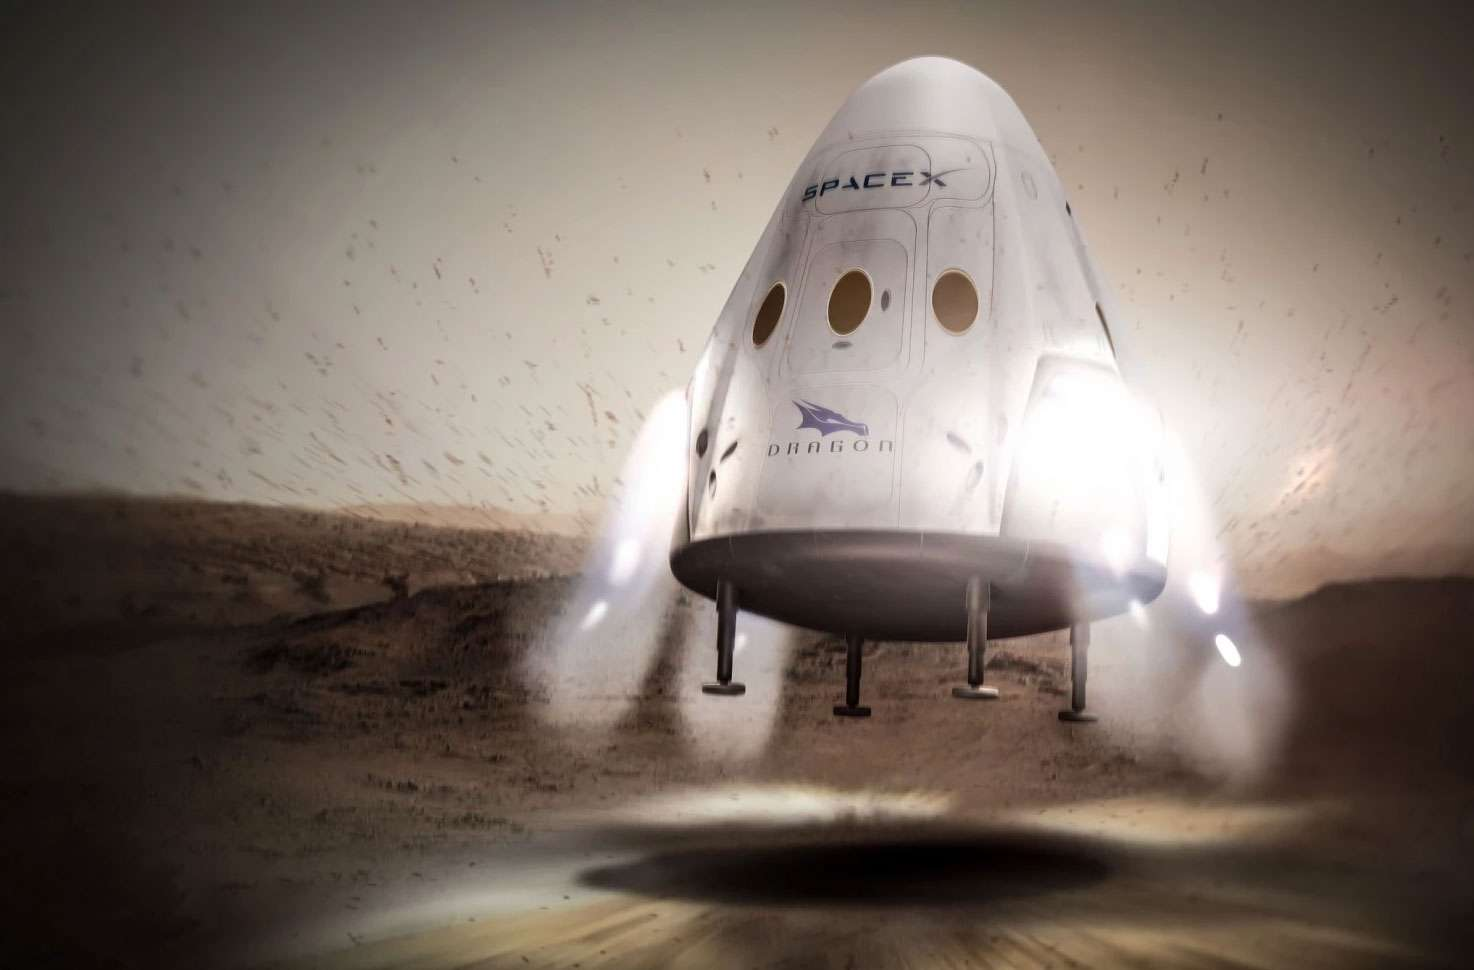 Capsula Red Dragon di SpaceX